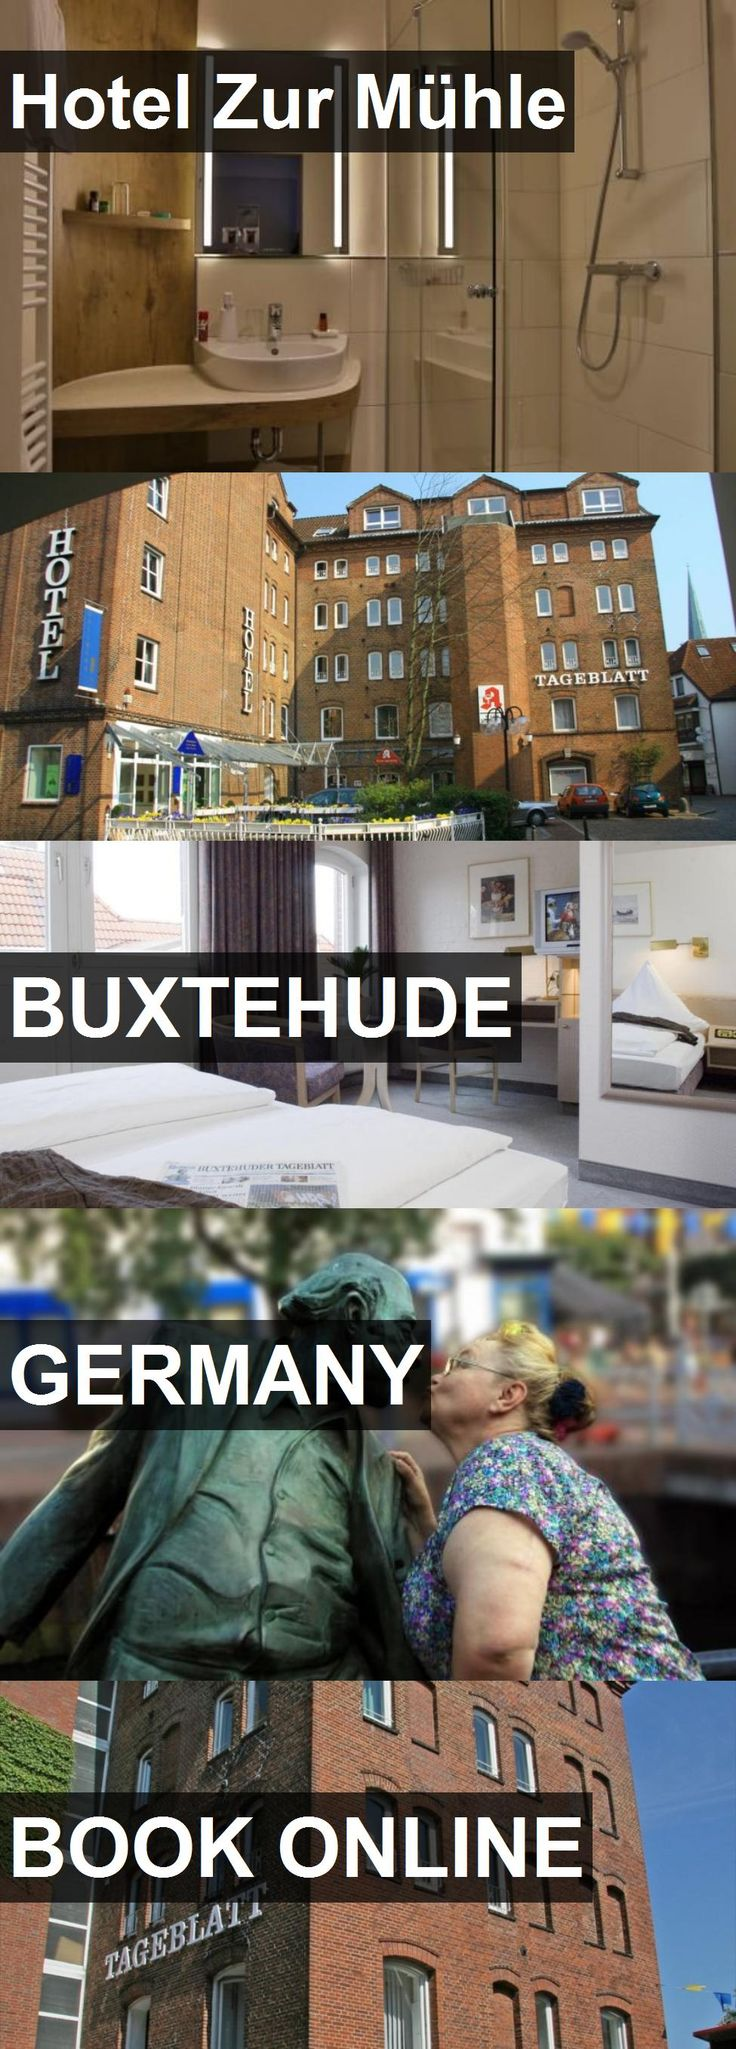 Hotel Zur Mühle in Buxtehude, Germany. For more information, photos, reviews and best prices please follow the link. #Germany #Buxtehude #travel #vacation #hotel